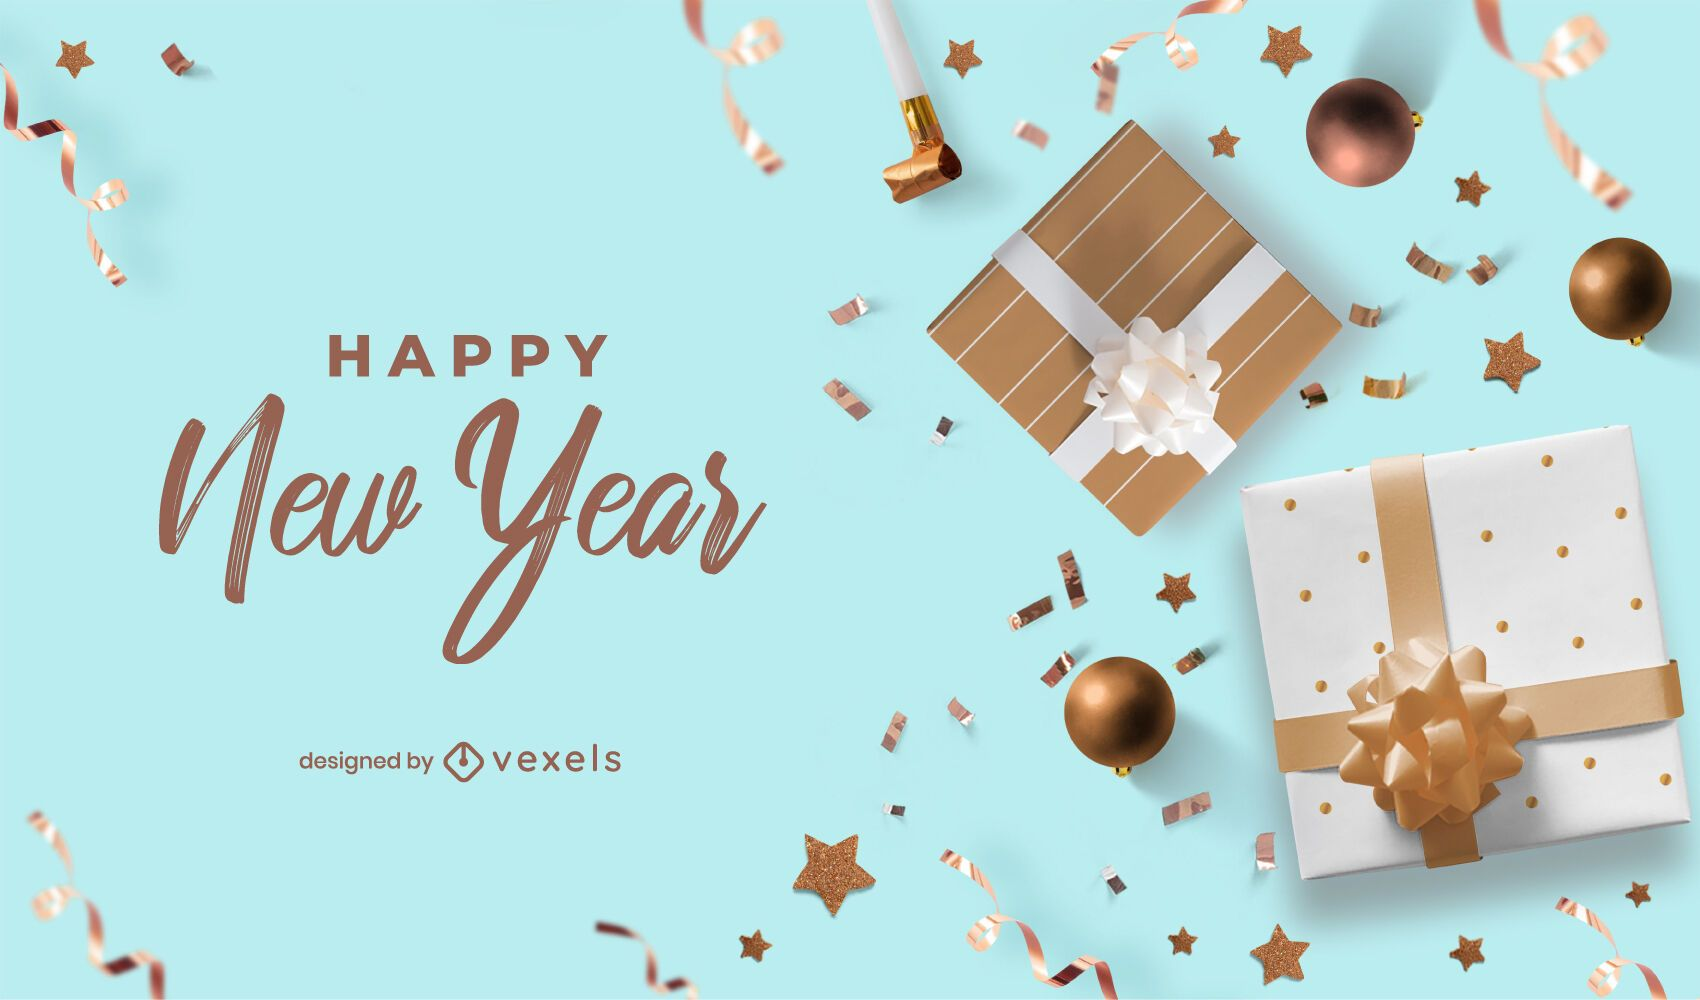 Happy new year party background design